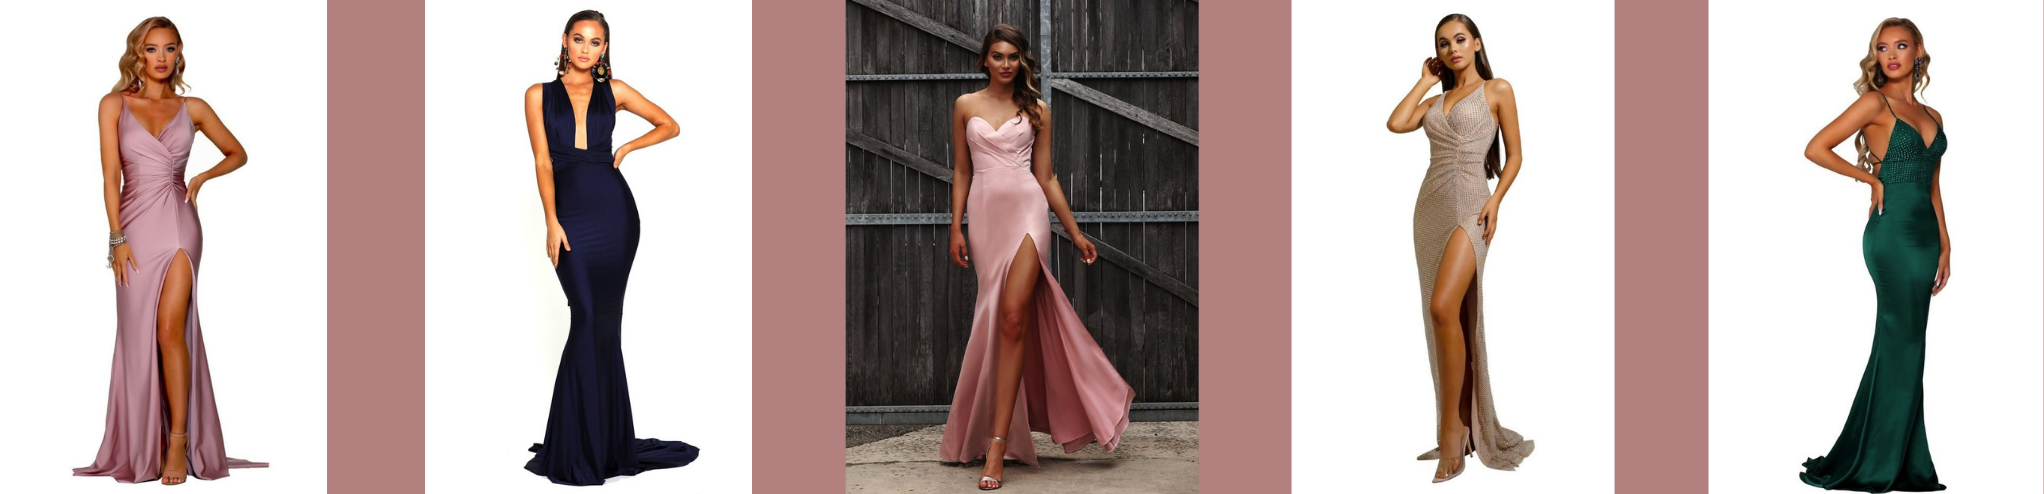 Prom dresses all available from Finique